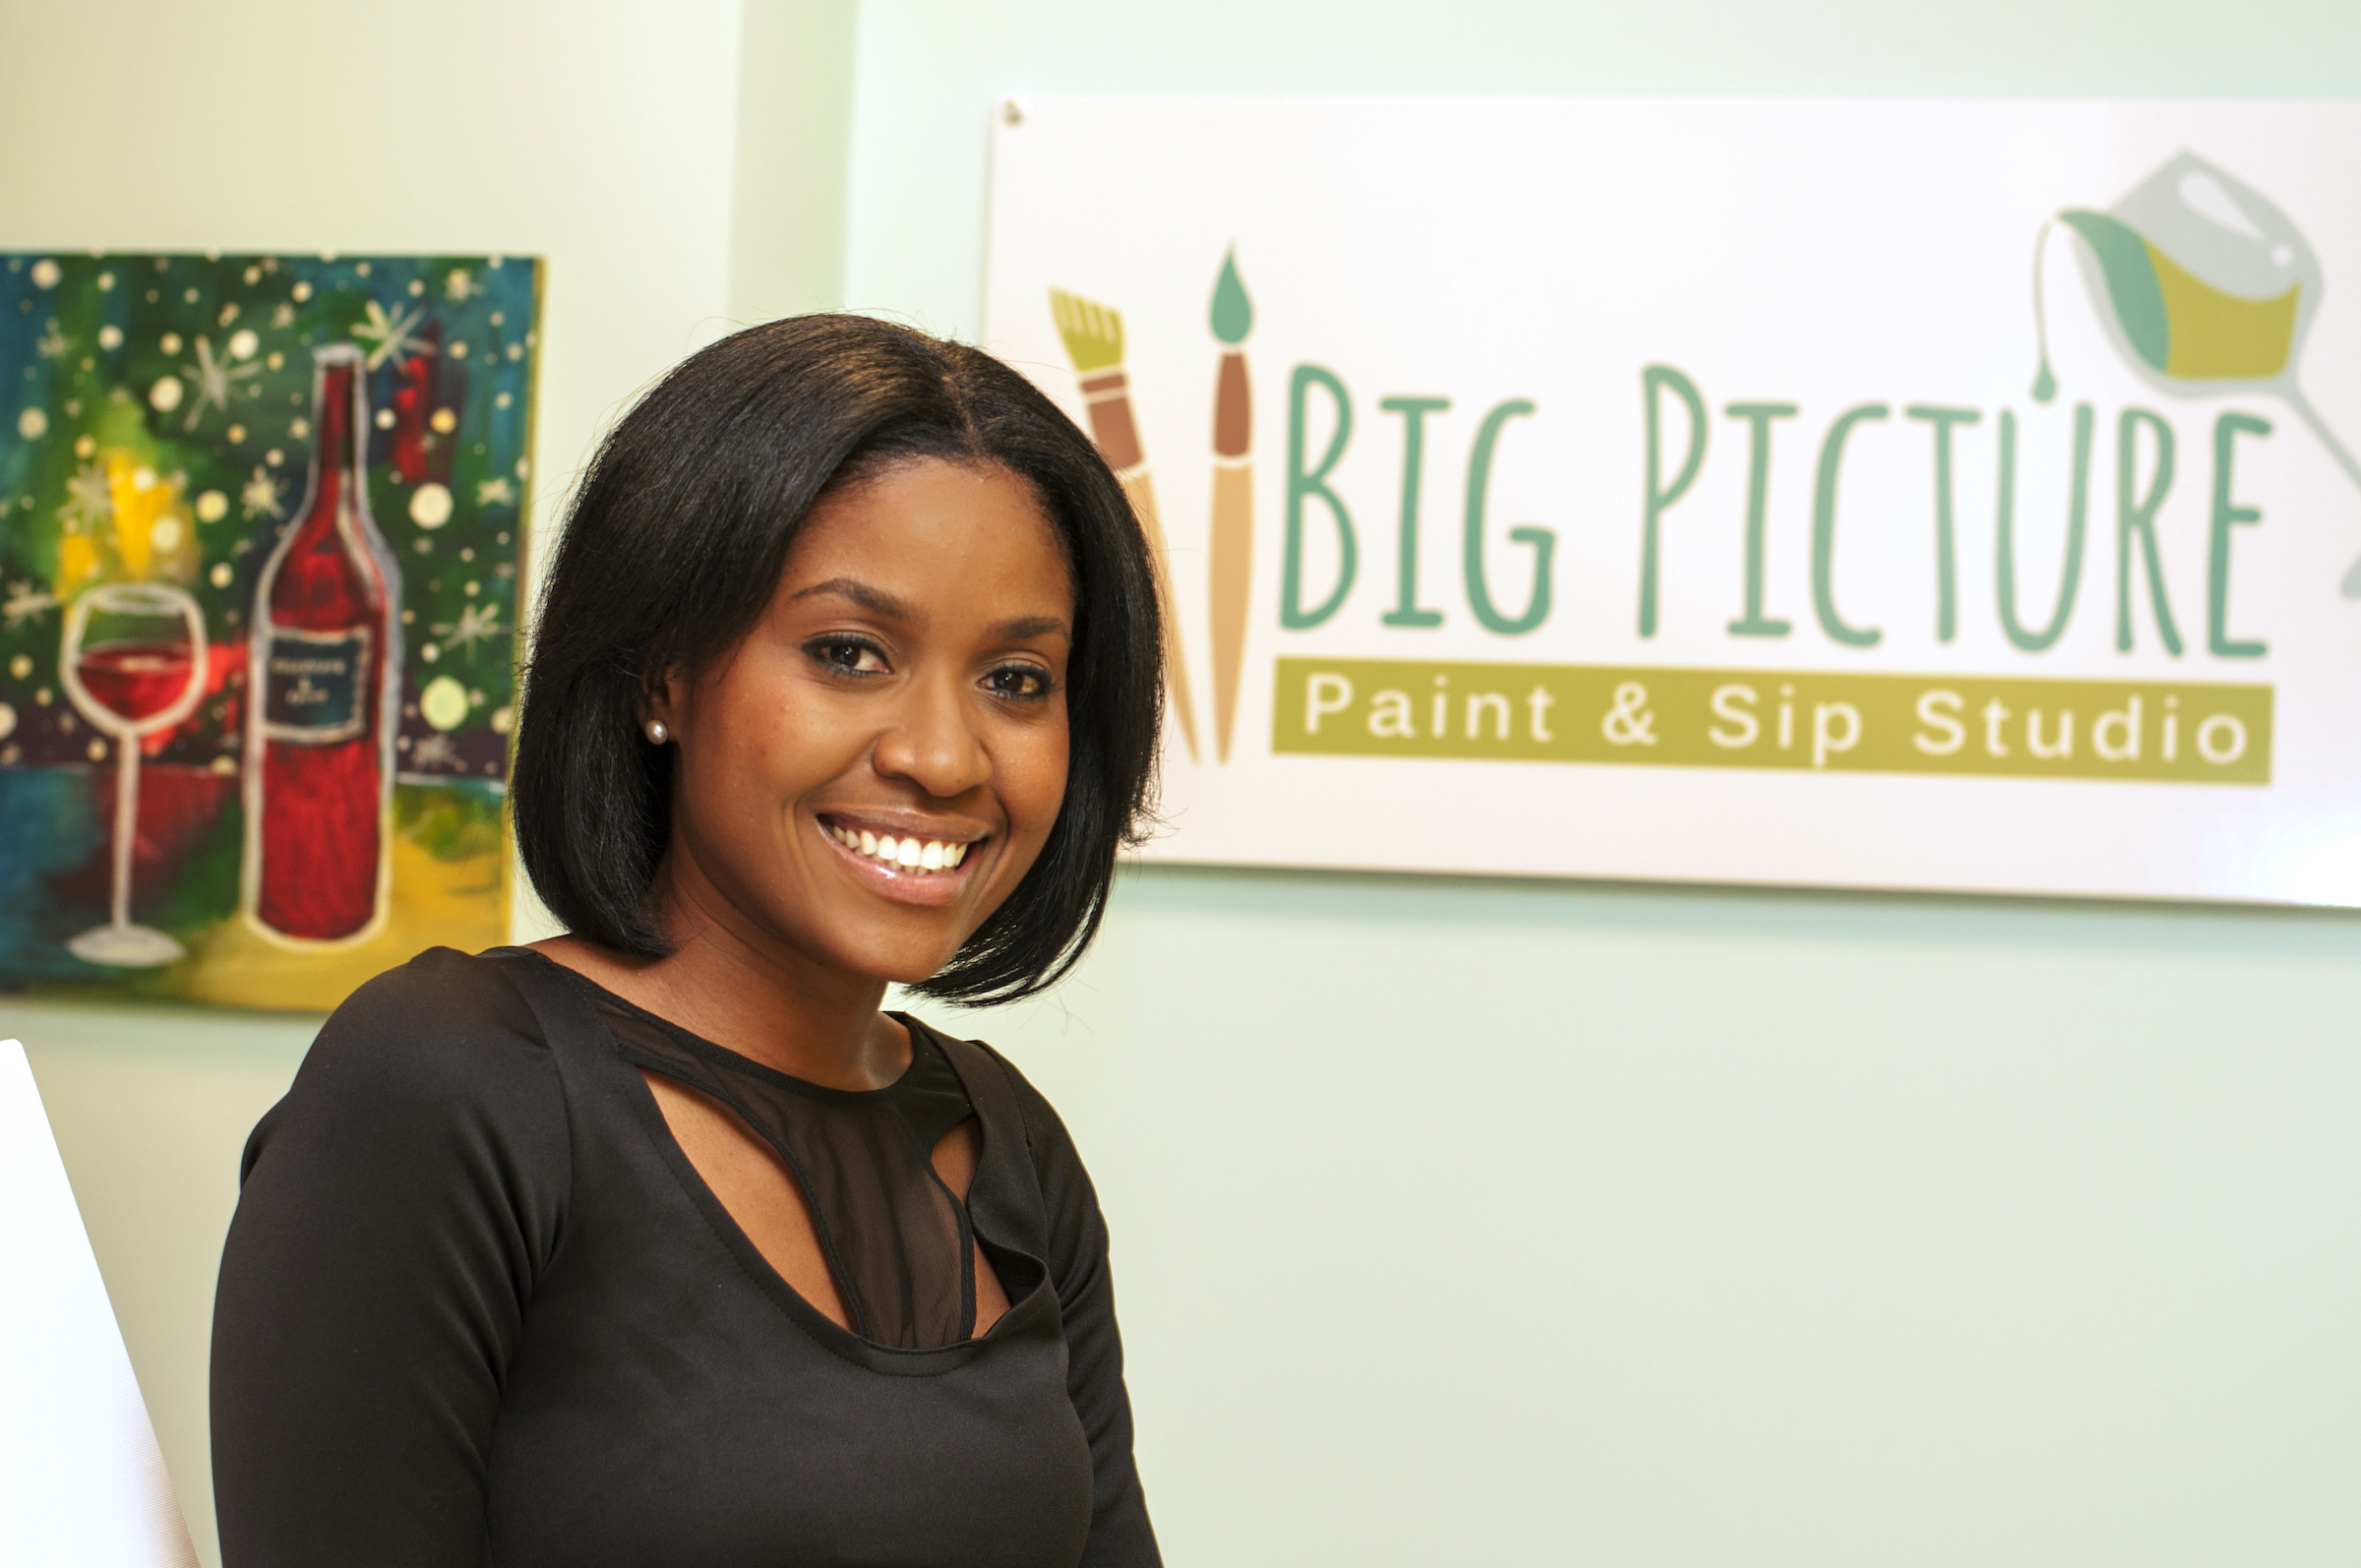 Pic 2-Big Picture Founder Gennyne Hepburn in studio.JPG